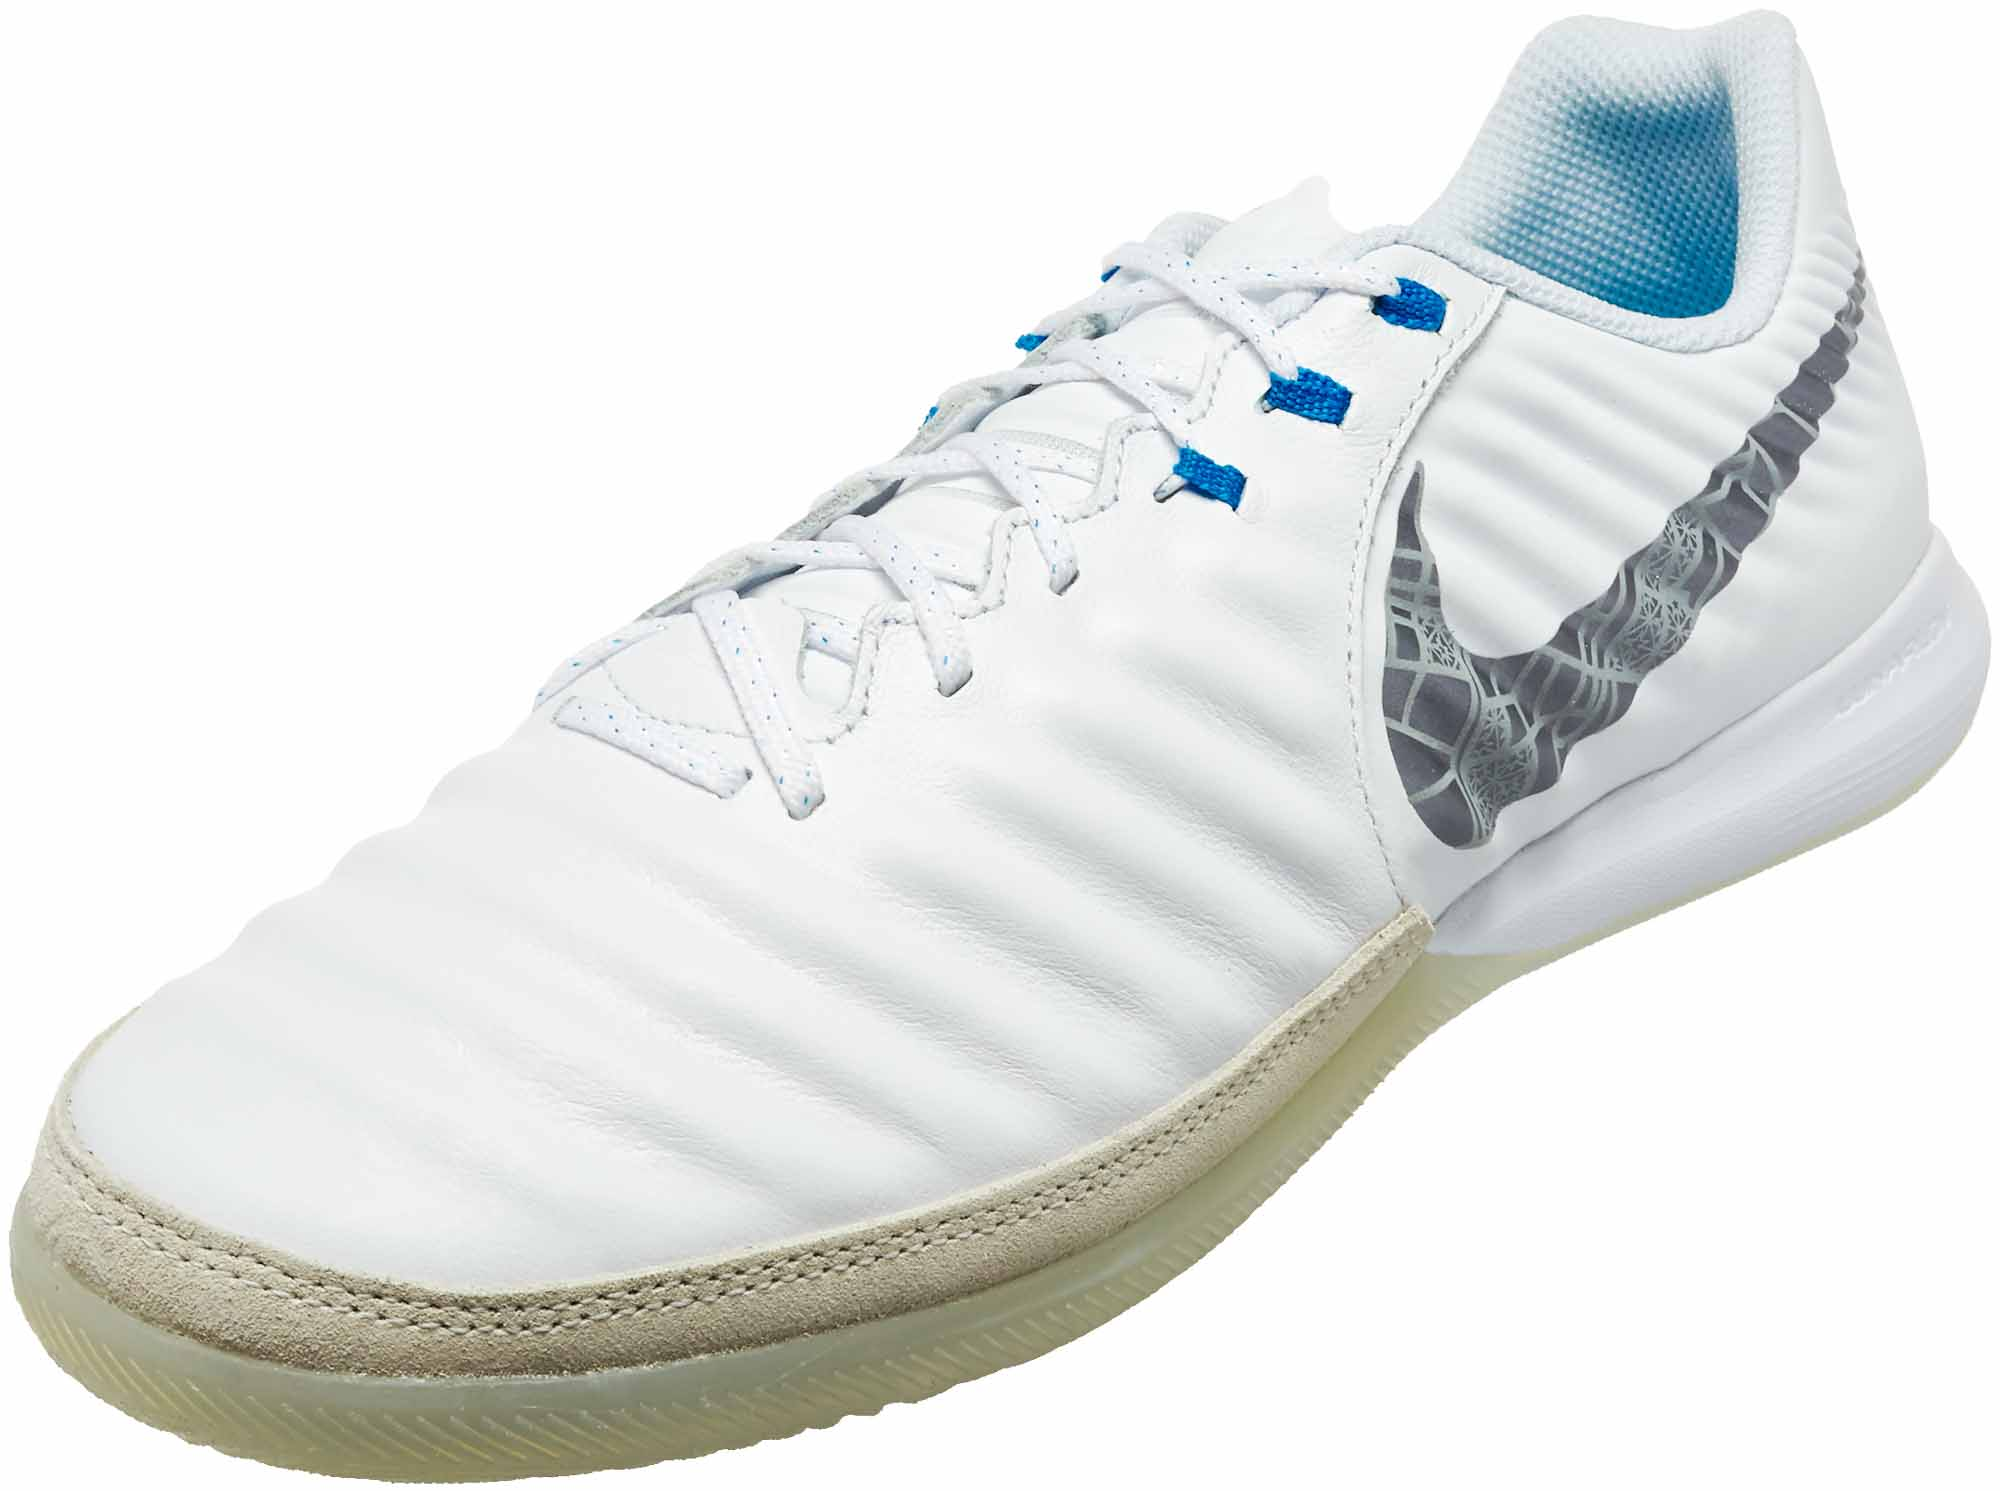 42e4948e6 Nike Tiempo LegendX 7 Pro IC - White/Metallic Cool Grey/Blue Hero ...